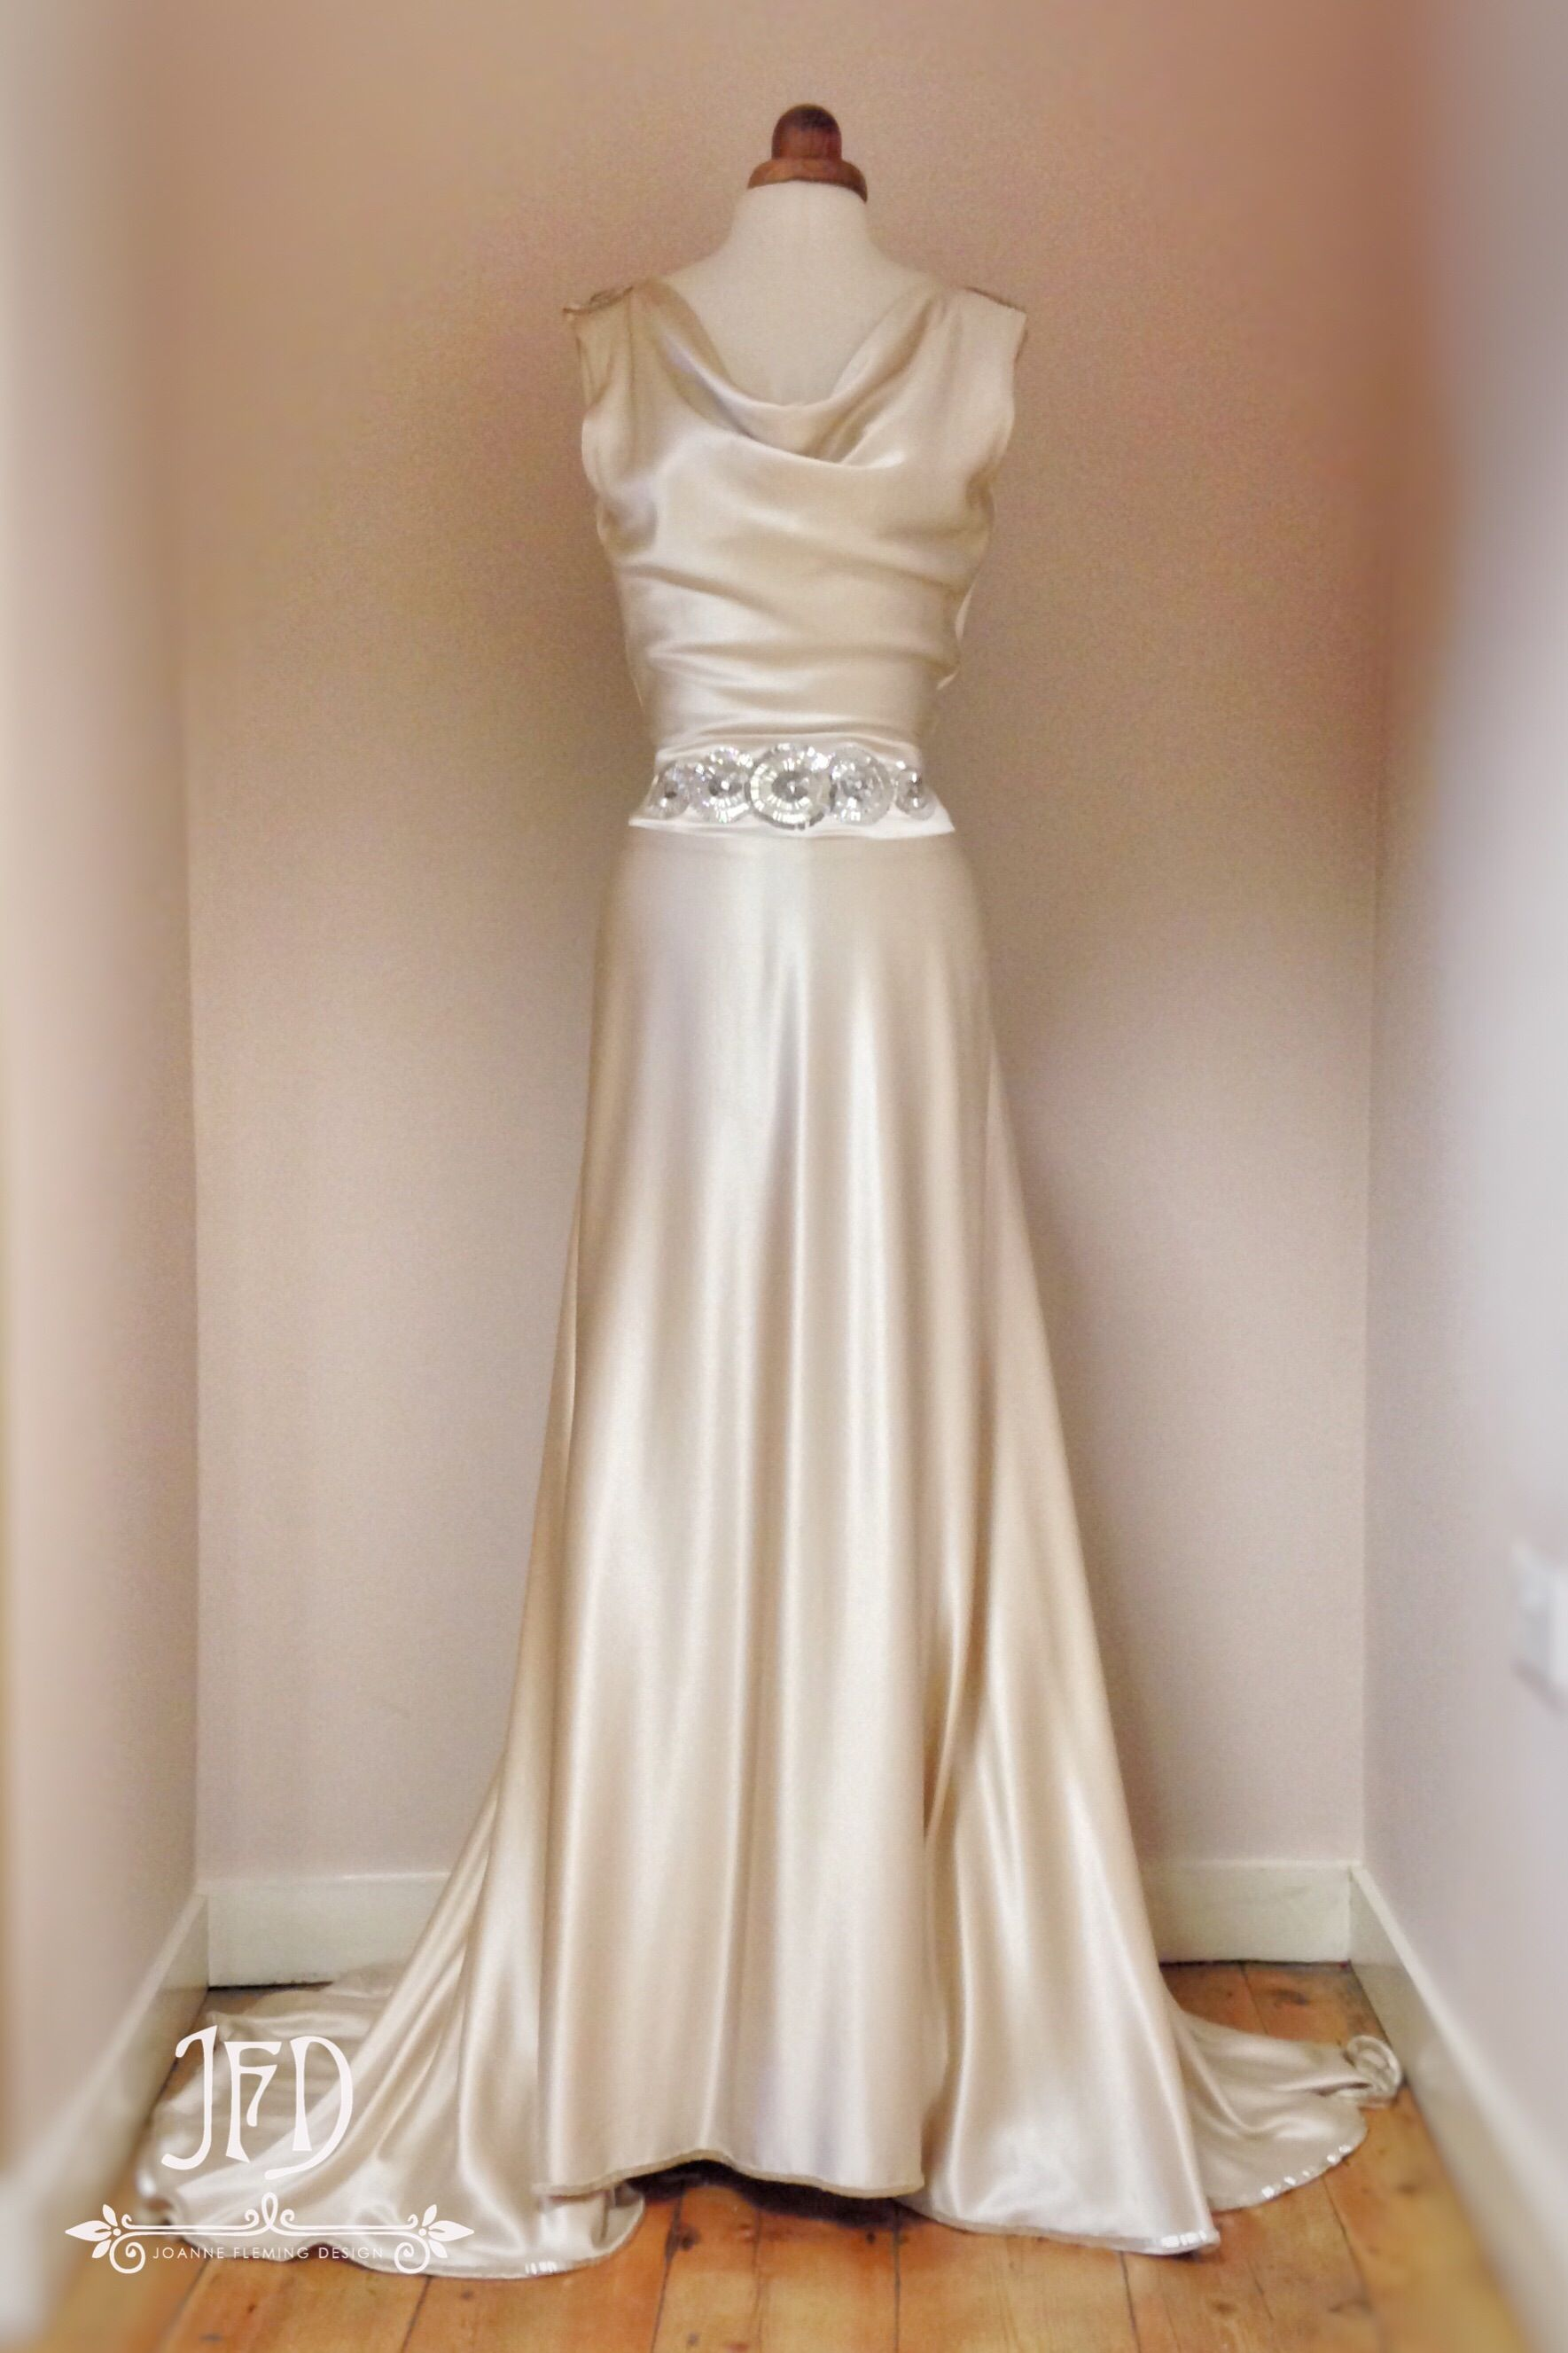 Sample Sale Oyster Silk Satin Art Deco Wedding Dress With Hand Beaded Detailing Size Uk10 Art Deco Wedding Dress Deco Wedding Dress Trendy Wedding Dresses